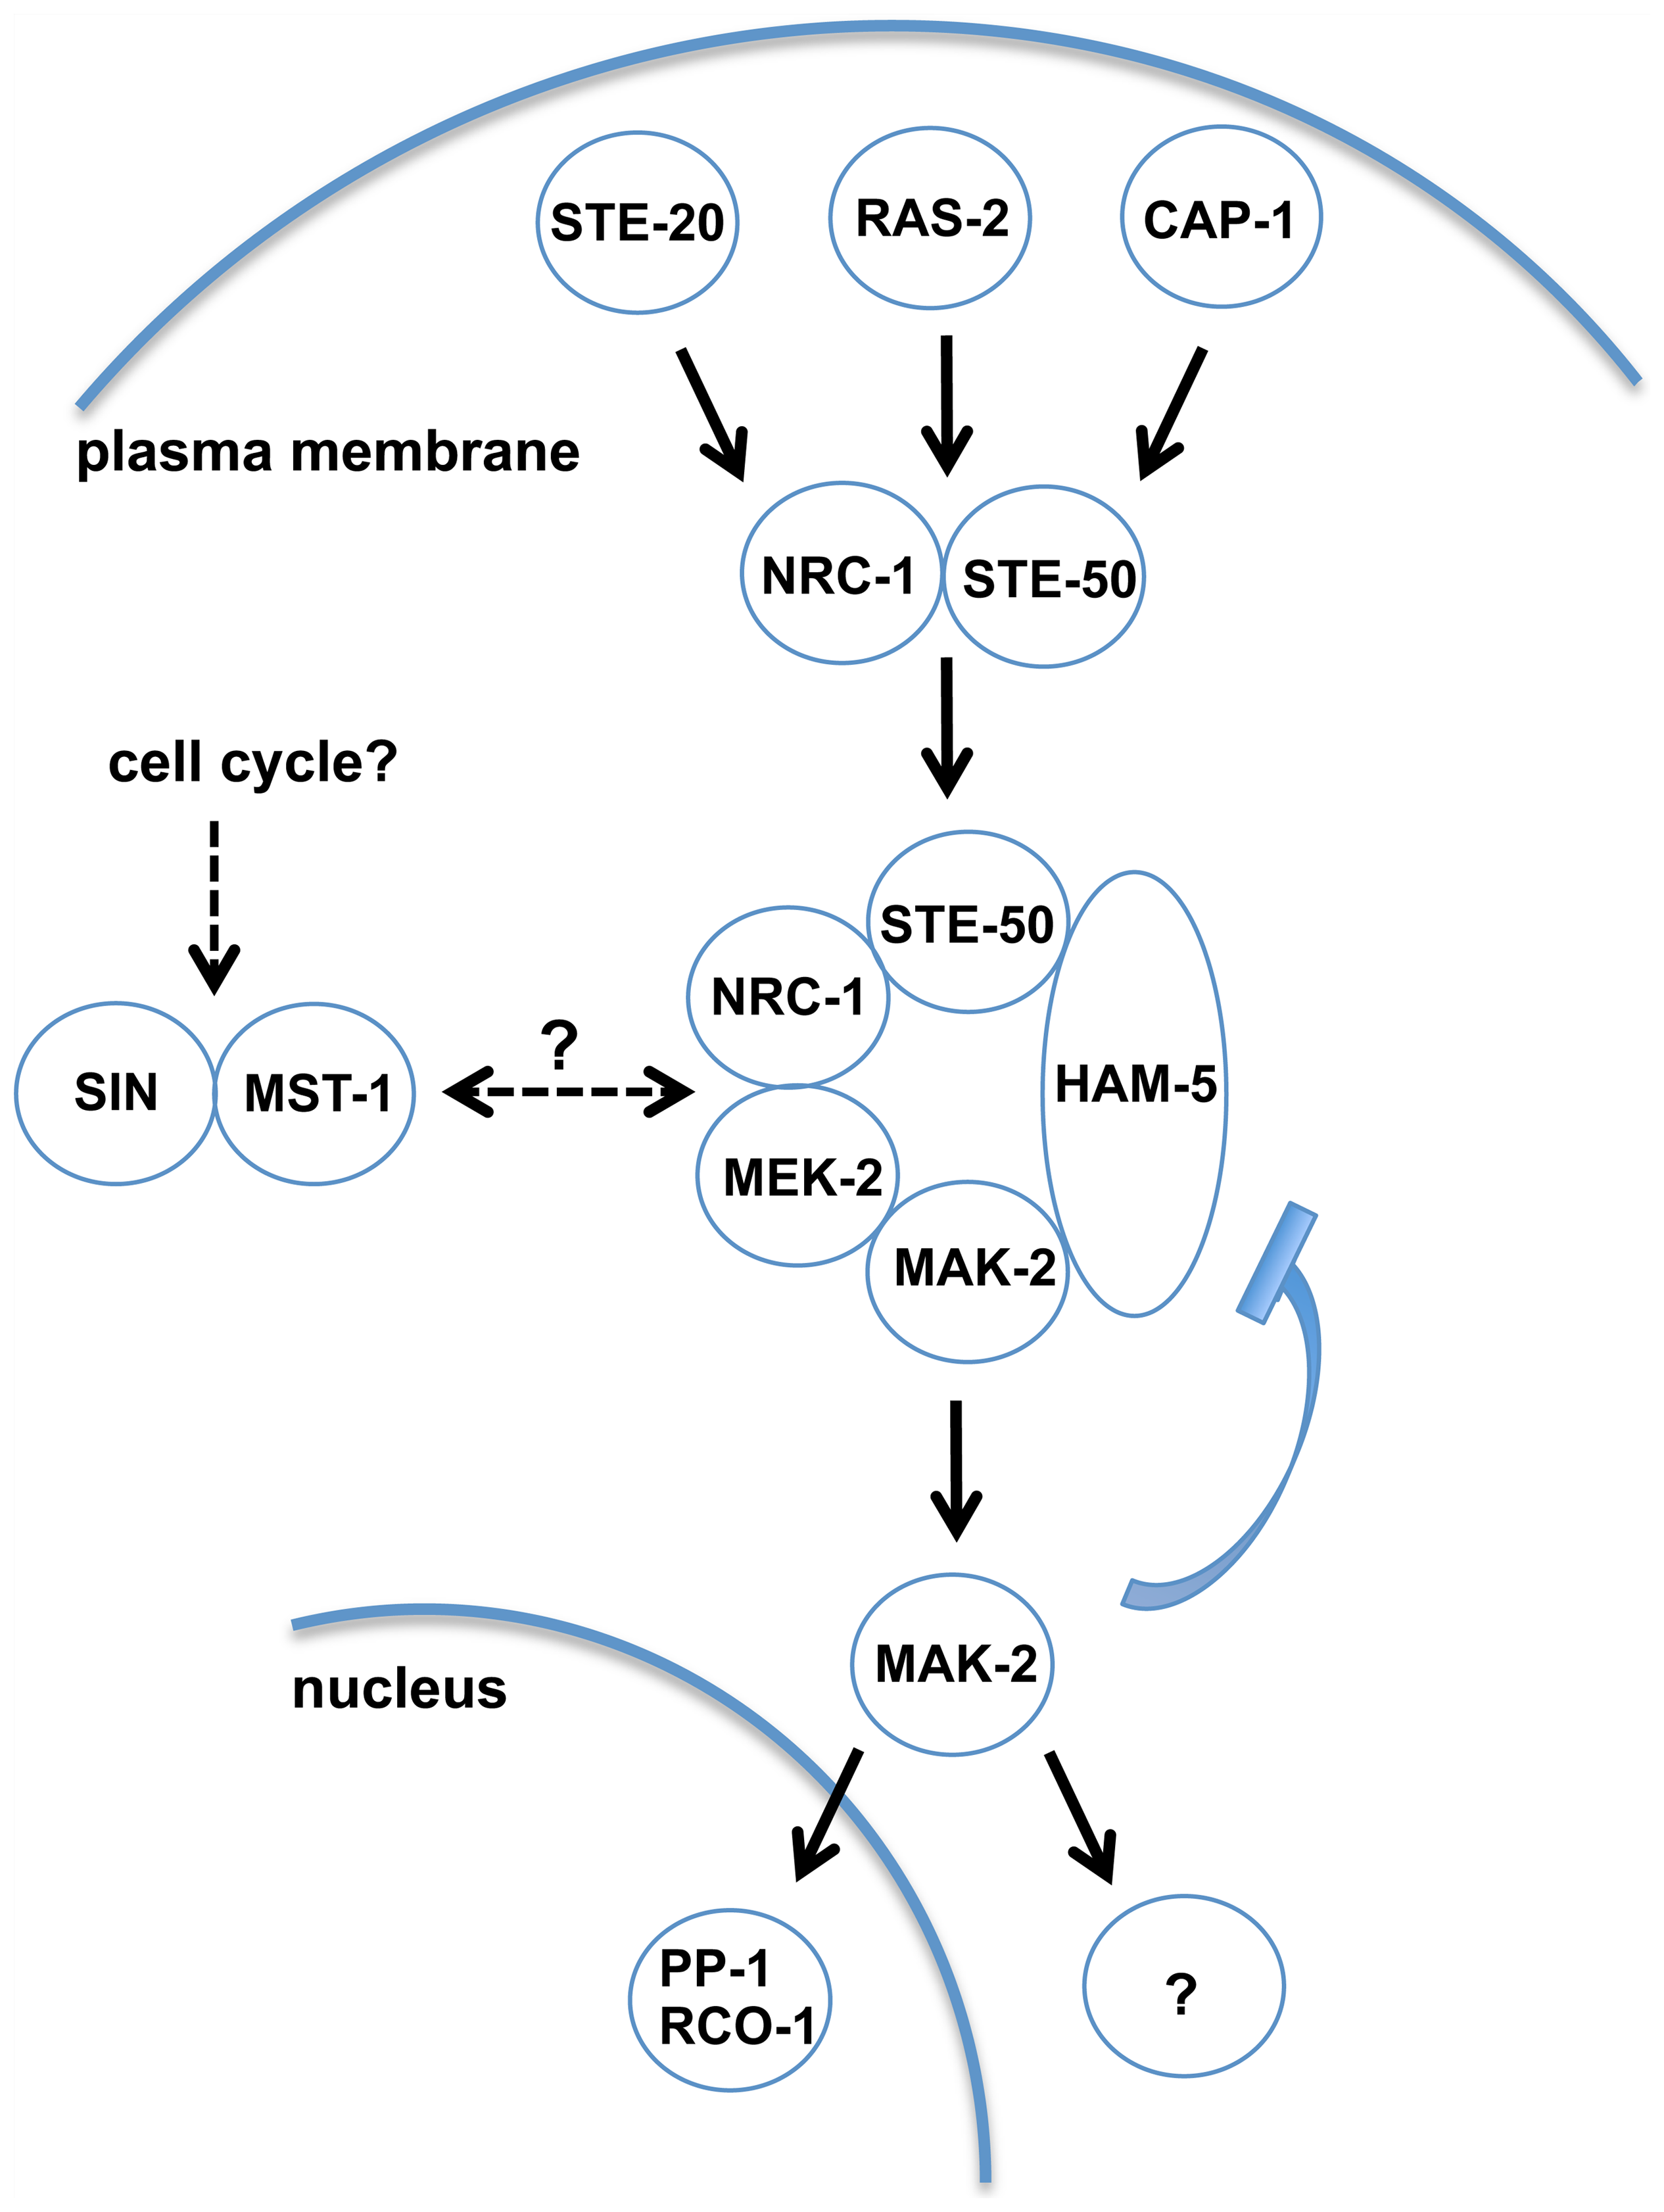 Model depicting network organization of the MAK-2 pathway and putative regulatory mechanisms.